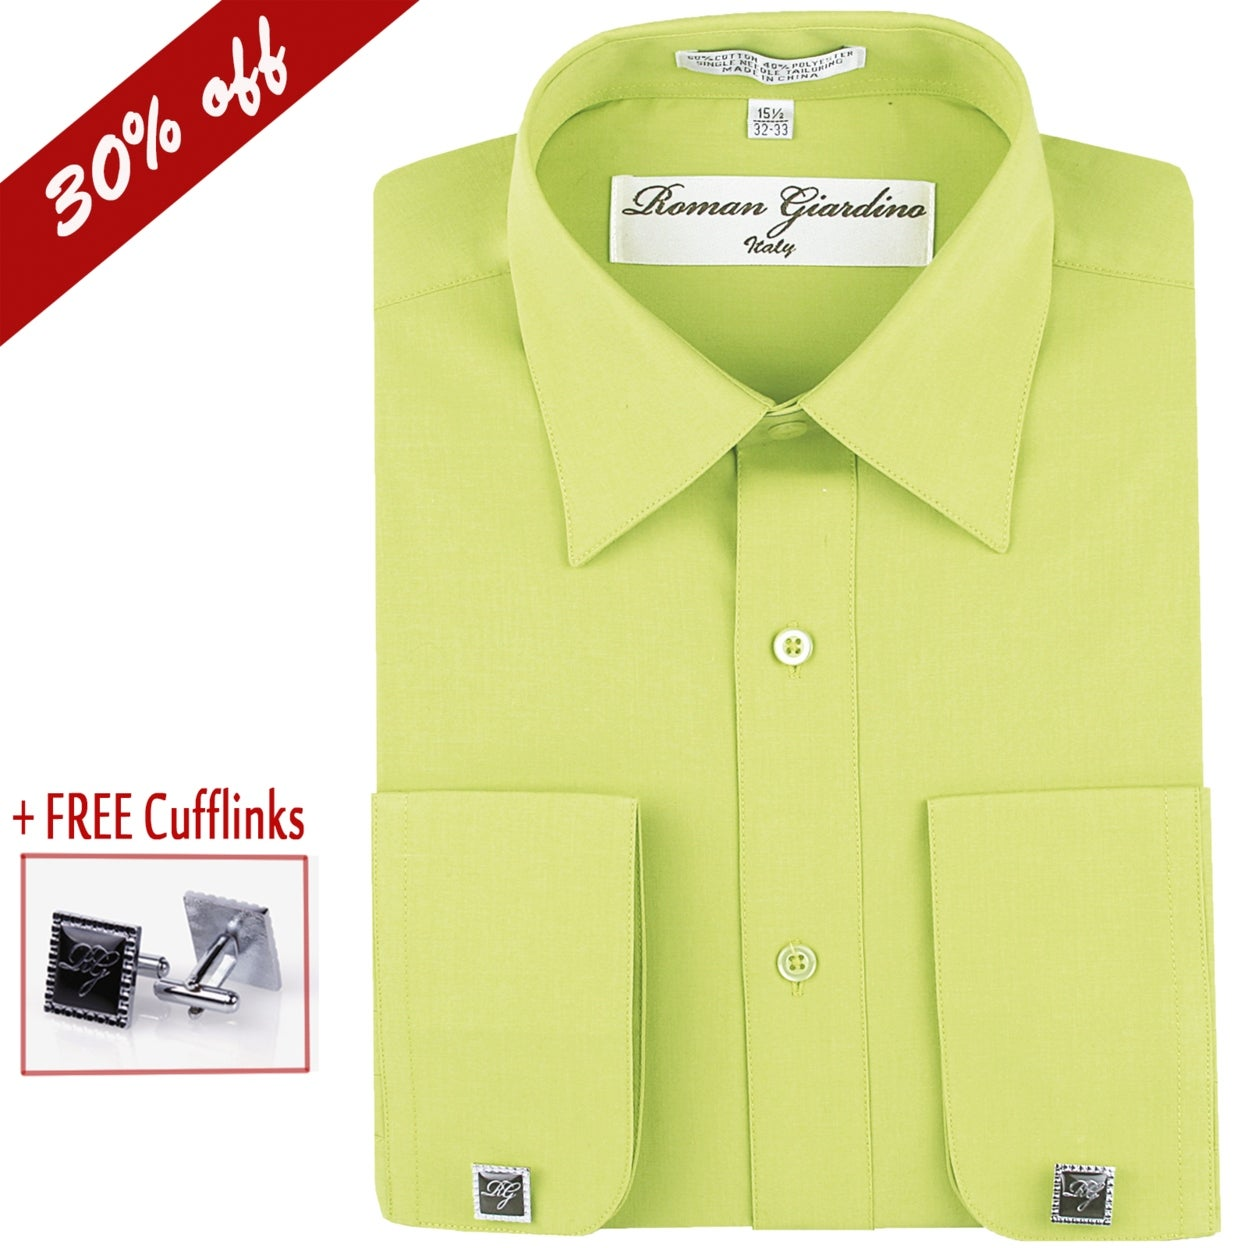 Shop Roman Giardino Mens Dress Shirt Long Sleeve Convertible Cuffs